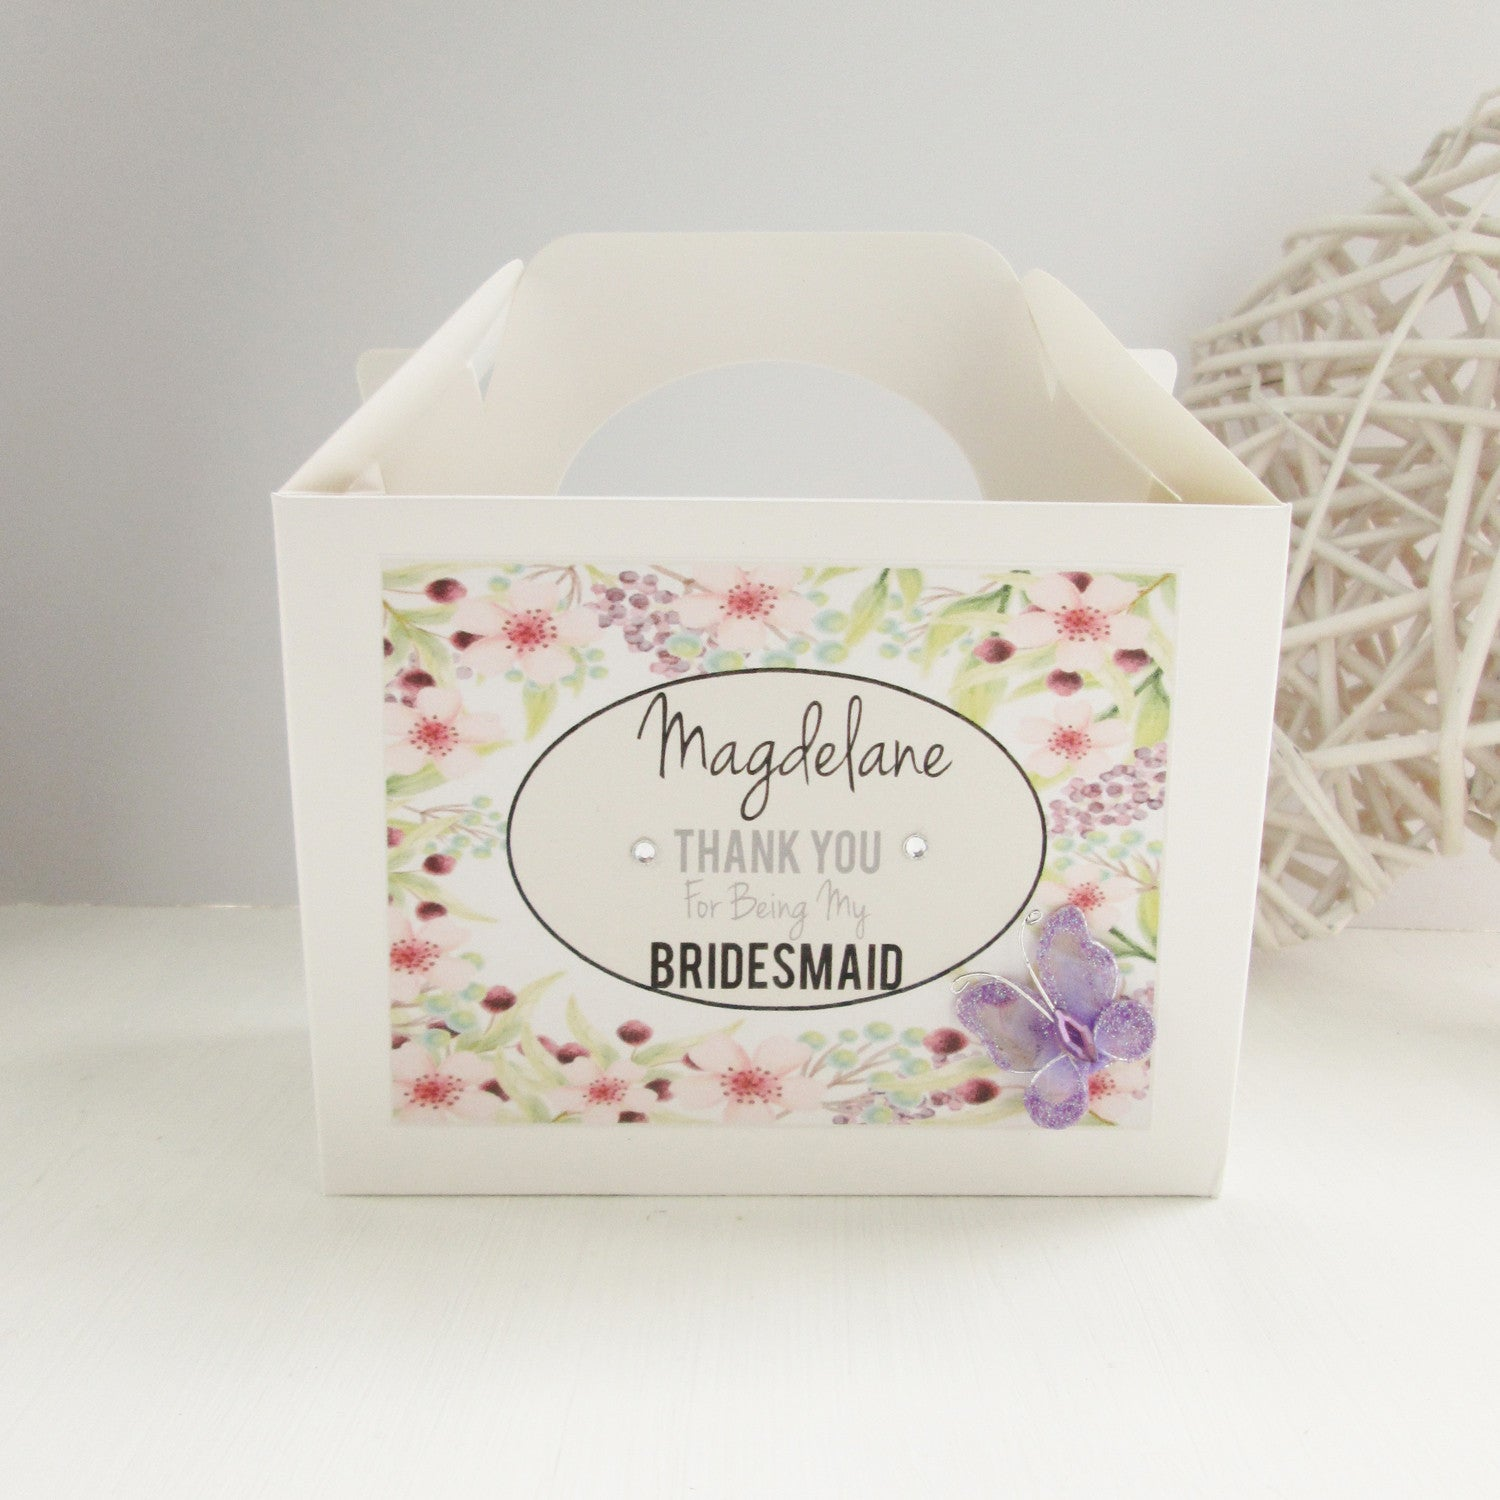 Personalised Bridesmaid Gift Box Spring Garden Design